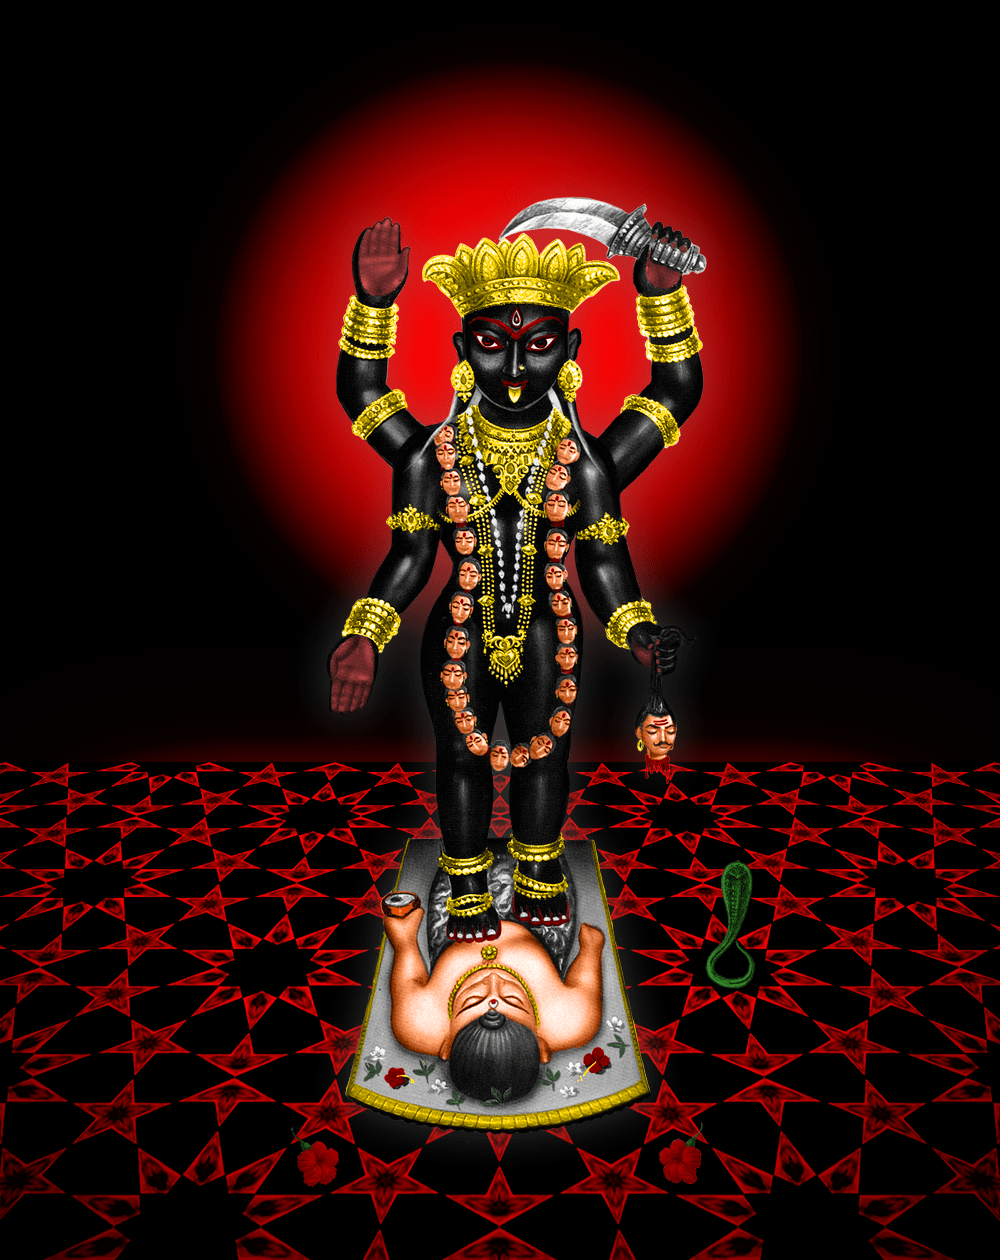 Maa Kali Hd Wallpaper 1080p Darshan A Gallery Of Kali Ma Images